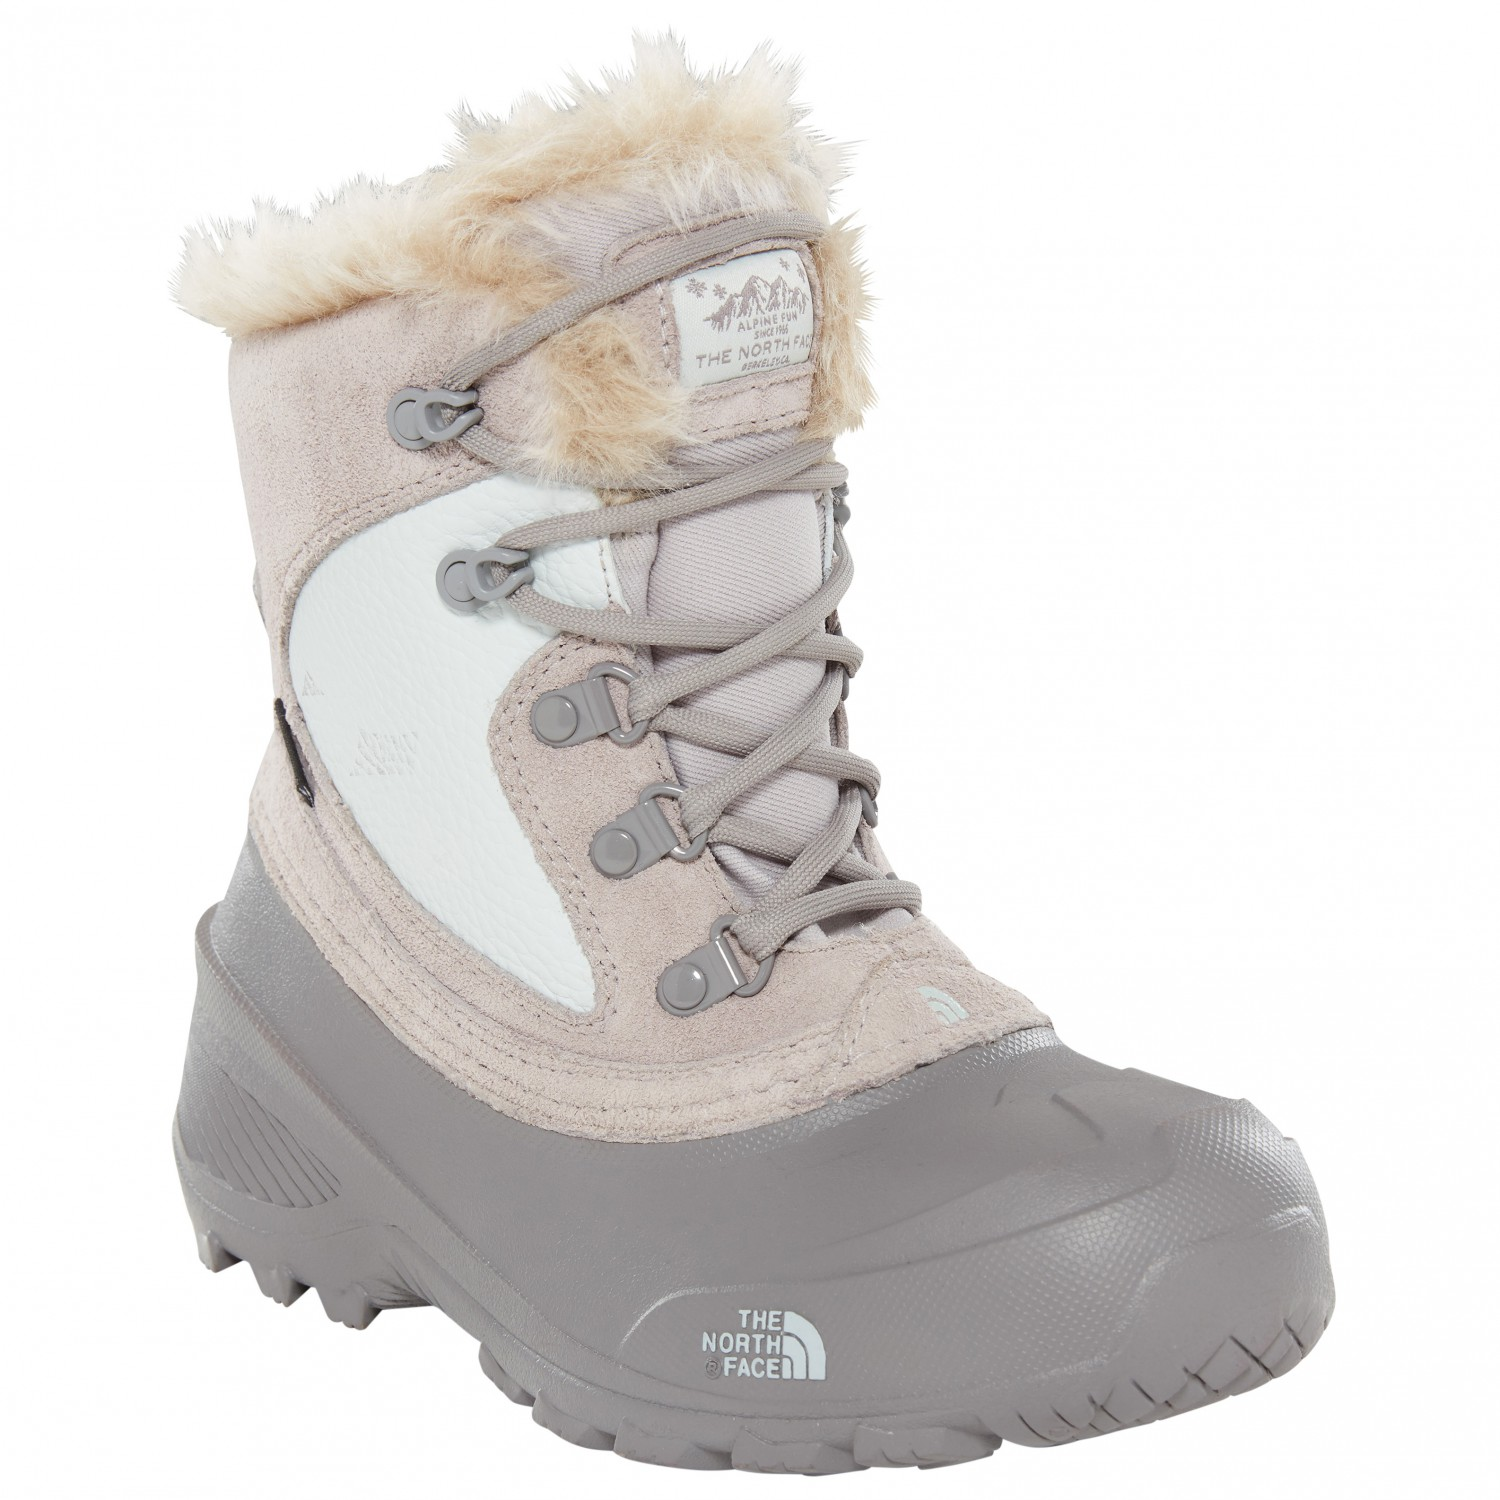 5d0f38188 The North Face - Youth Shellista Extreme - Winter boots - Foil Grey / Ice  Blue | 10K (US)